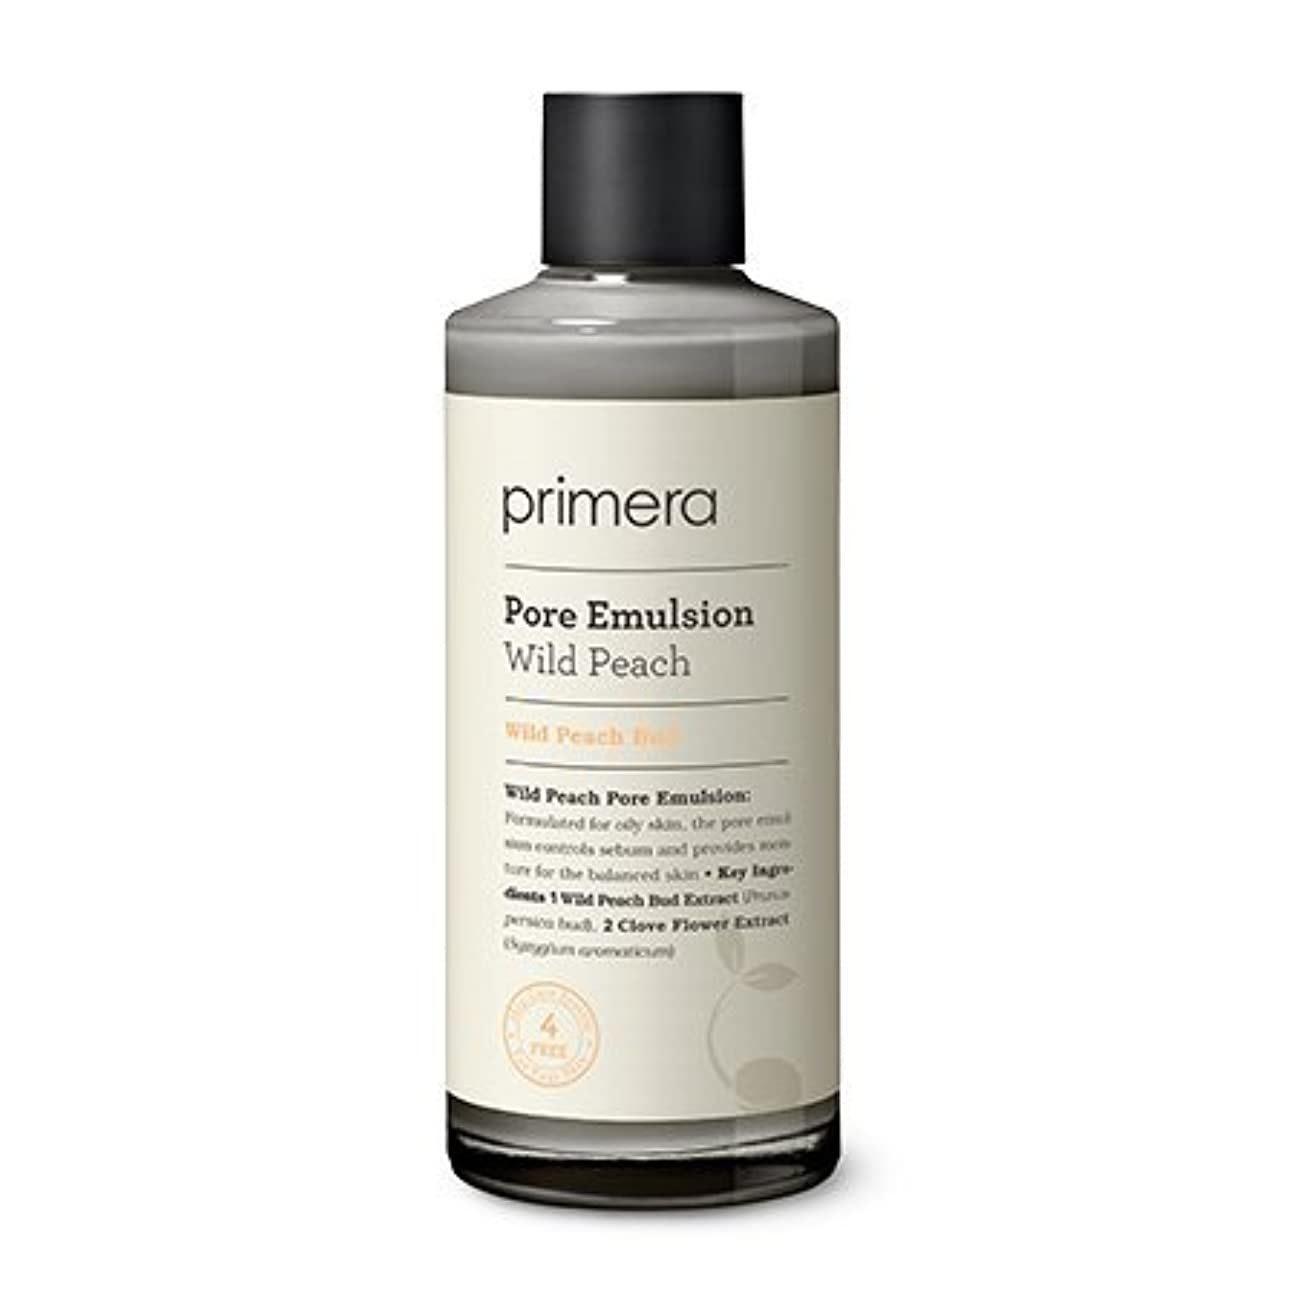 内訳クレタミトン【Primera】Wild Peach Pore Emulsion - 150ml (韓国直送品) (SHOPPINGINSTAGRAM)